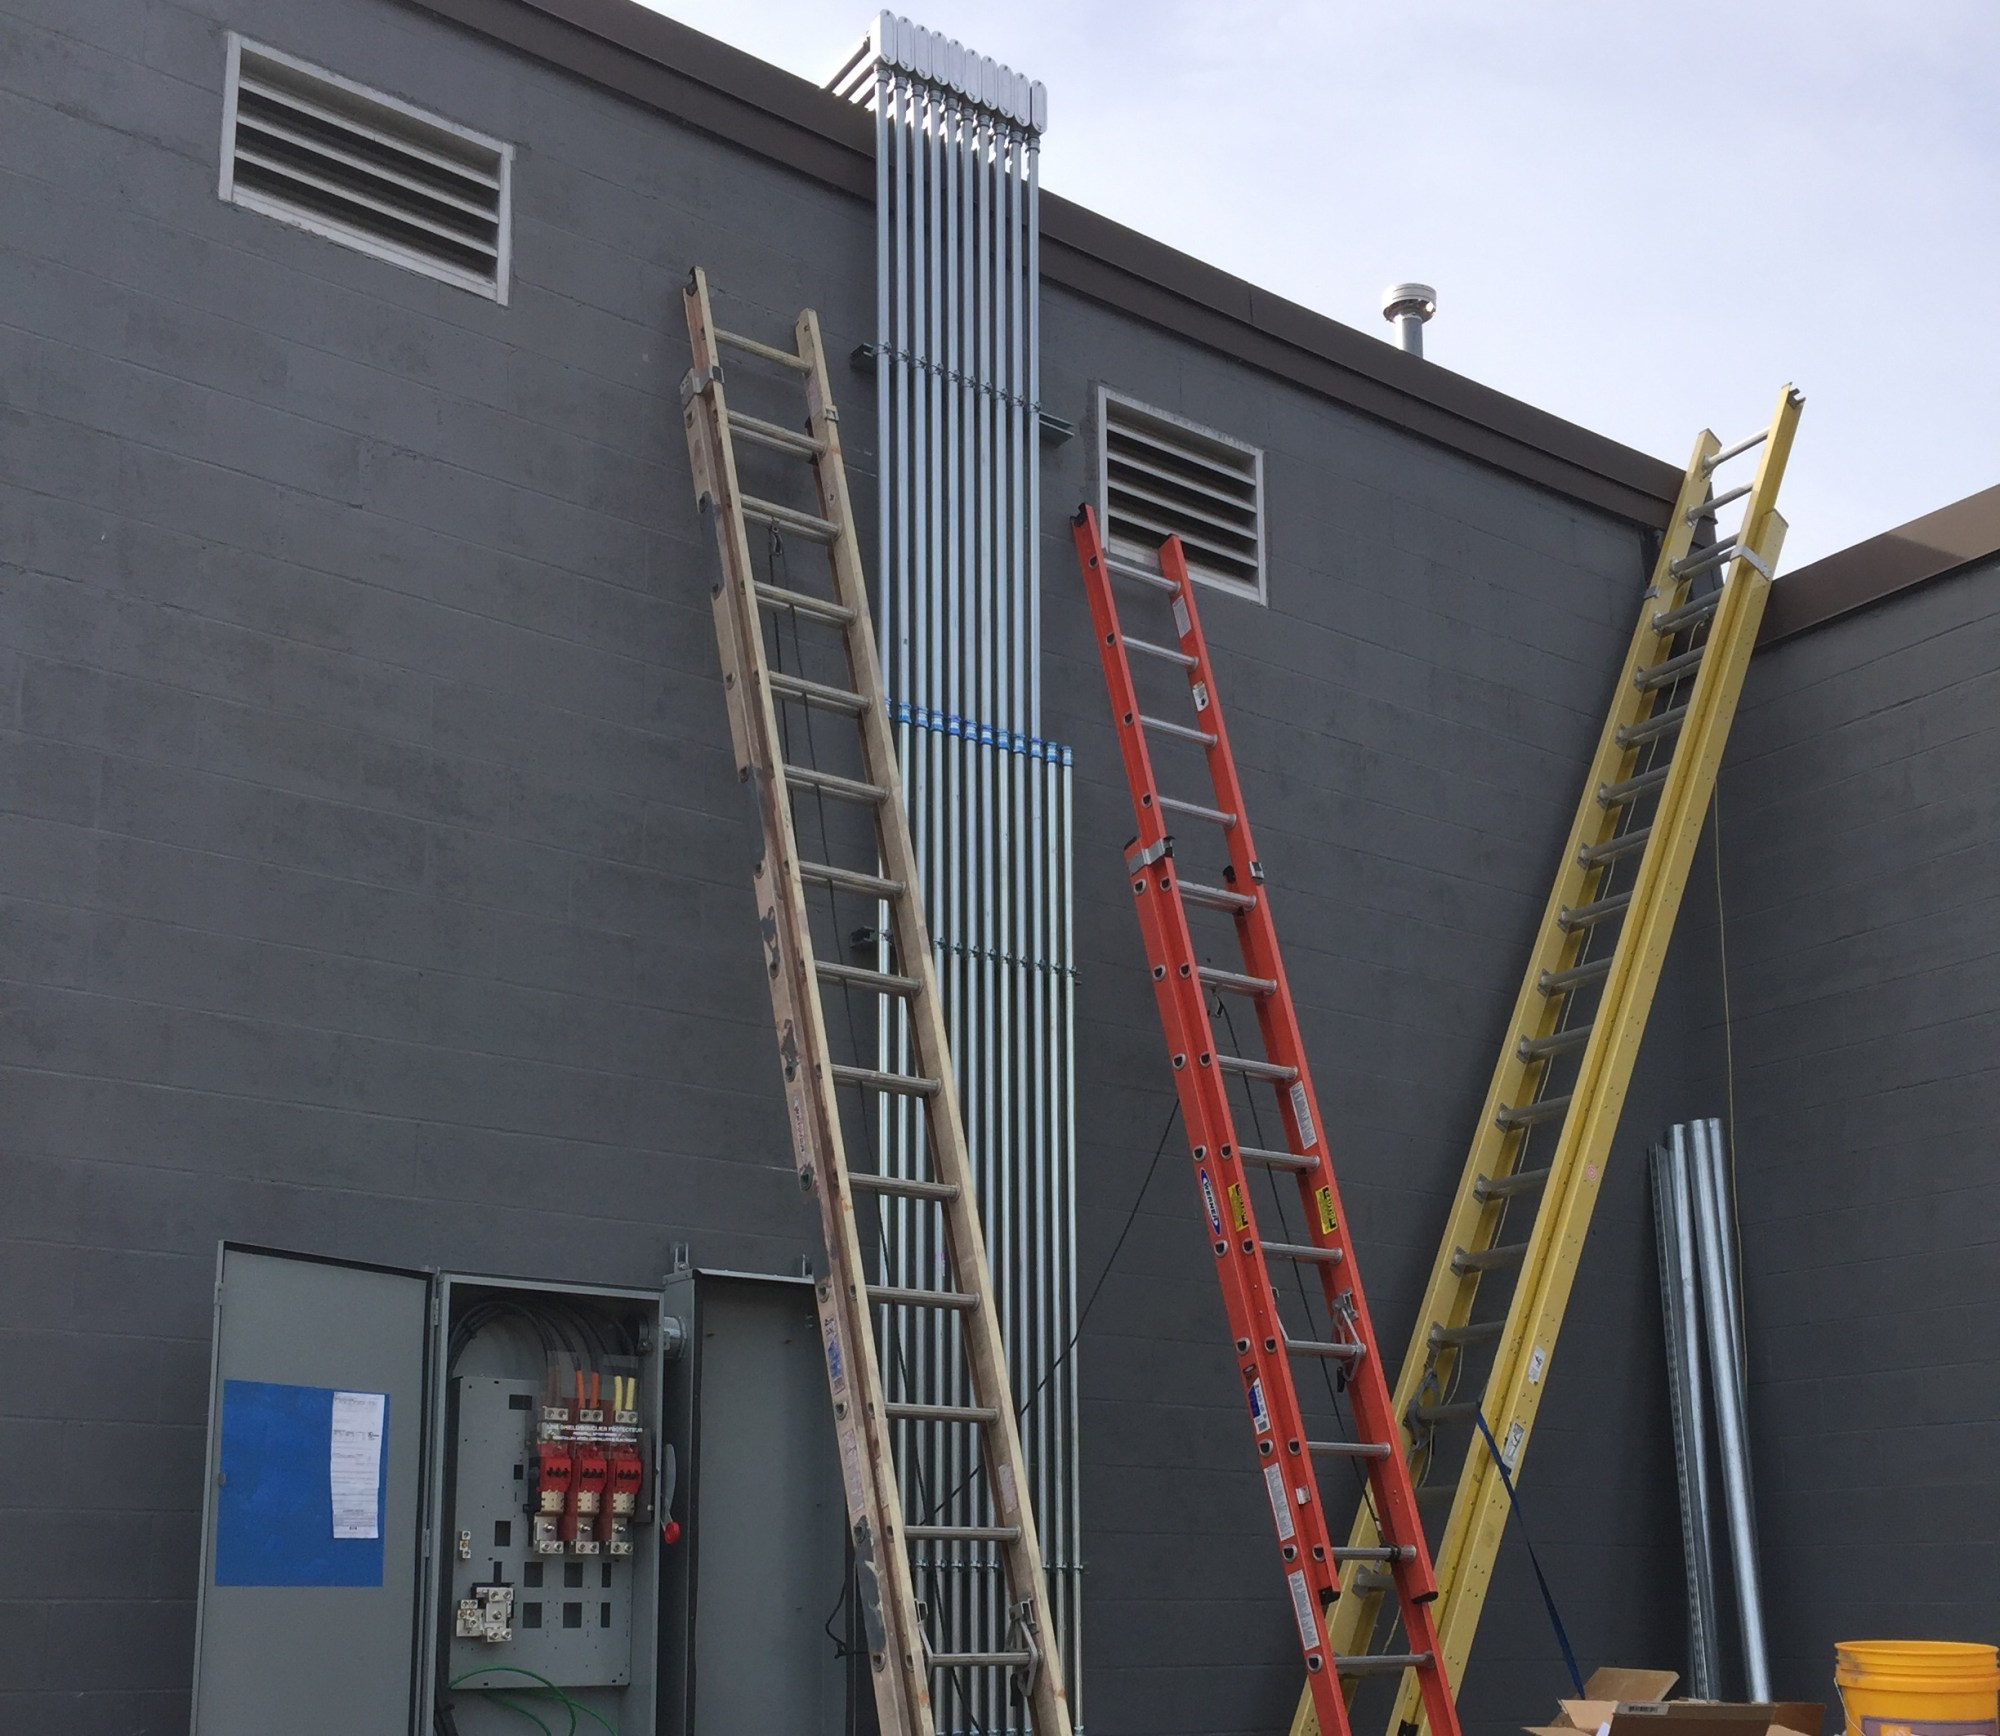 hight resolution of our highly trained electrical team takes great pride in ensuring the asthetics of a customer s building here you can see how they used precision in bring